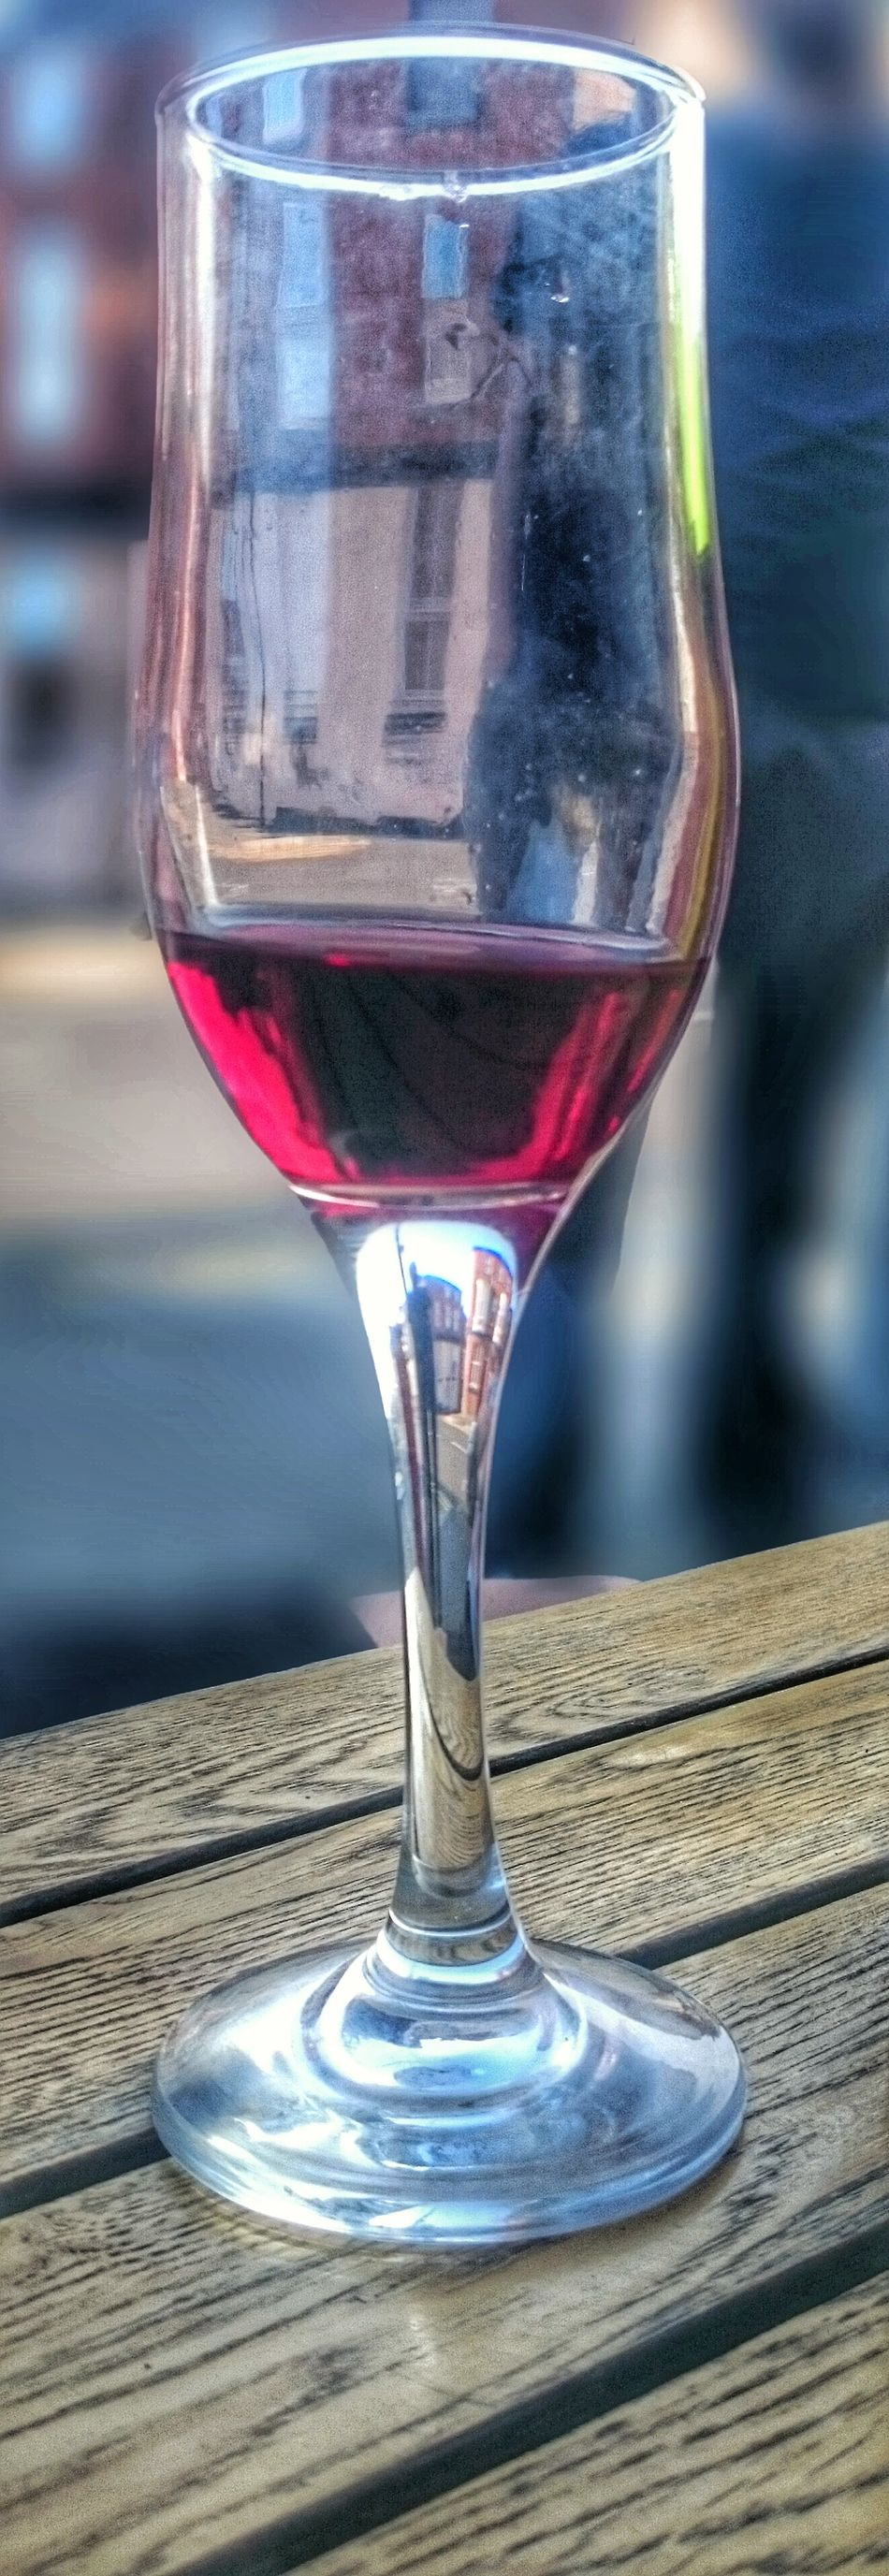 Wine Wineglass Red Rioja Reflection Defocus Backgound Defocus Summer Food And Drink Alchol Fine Art Photography